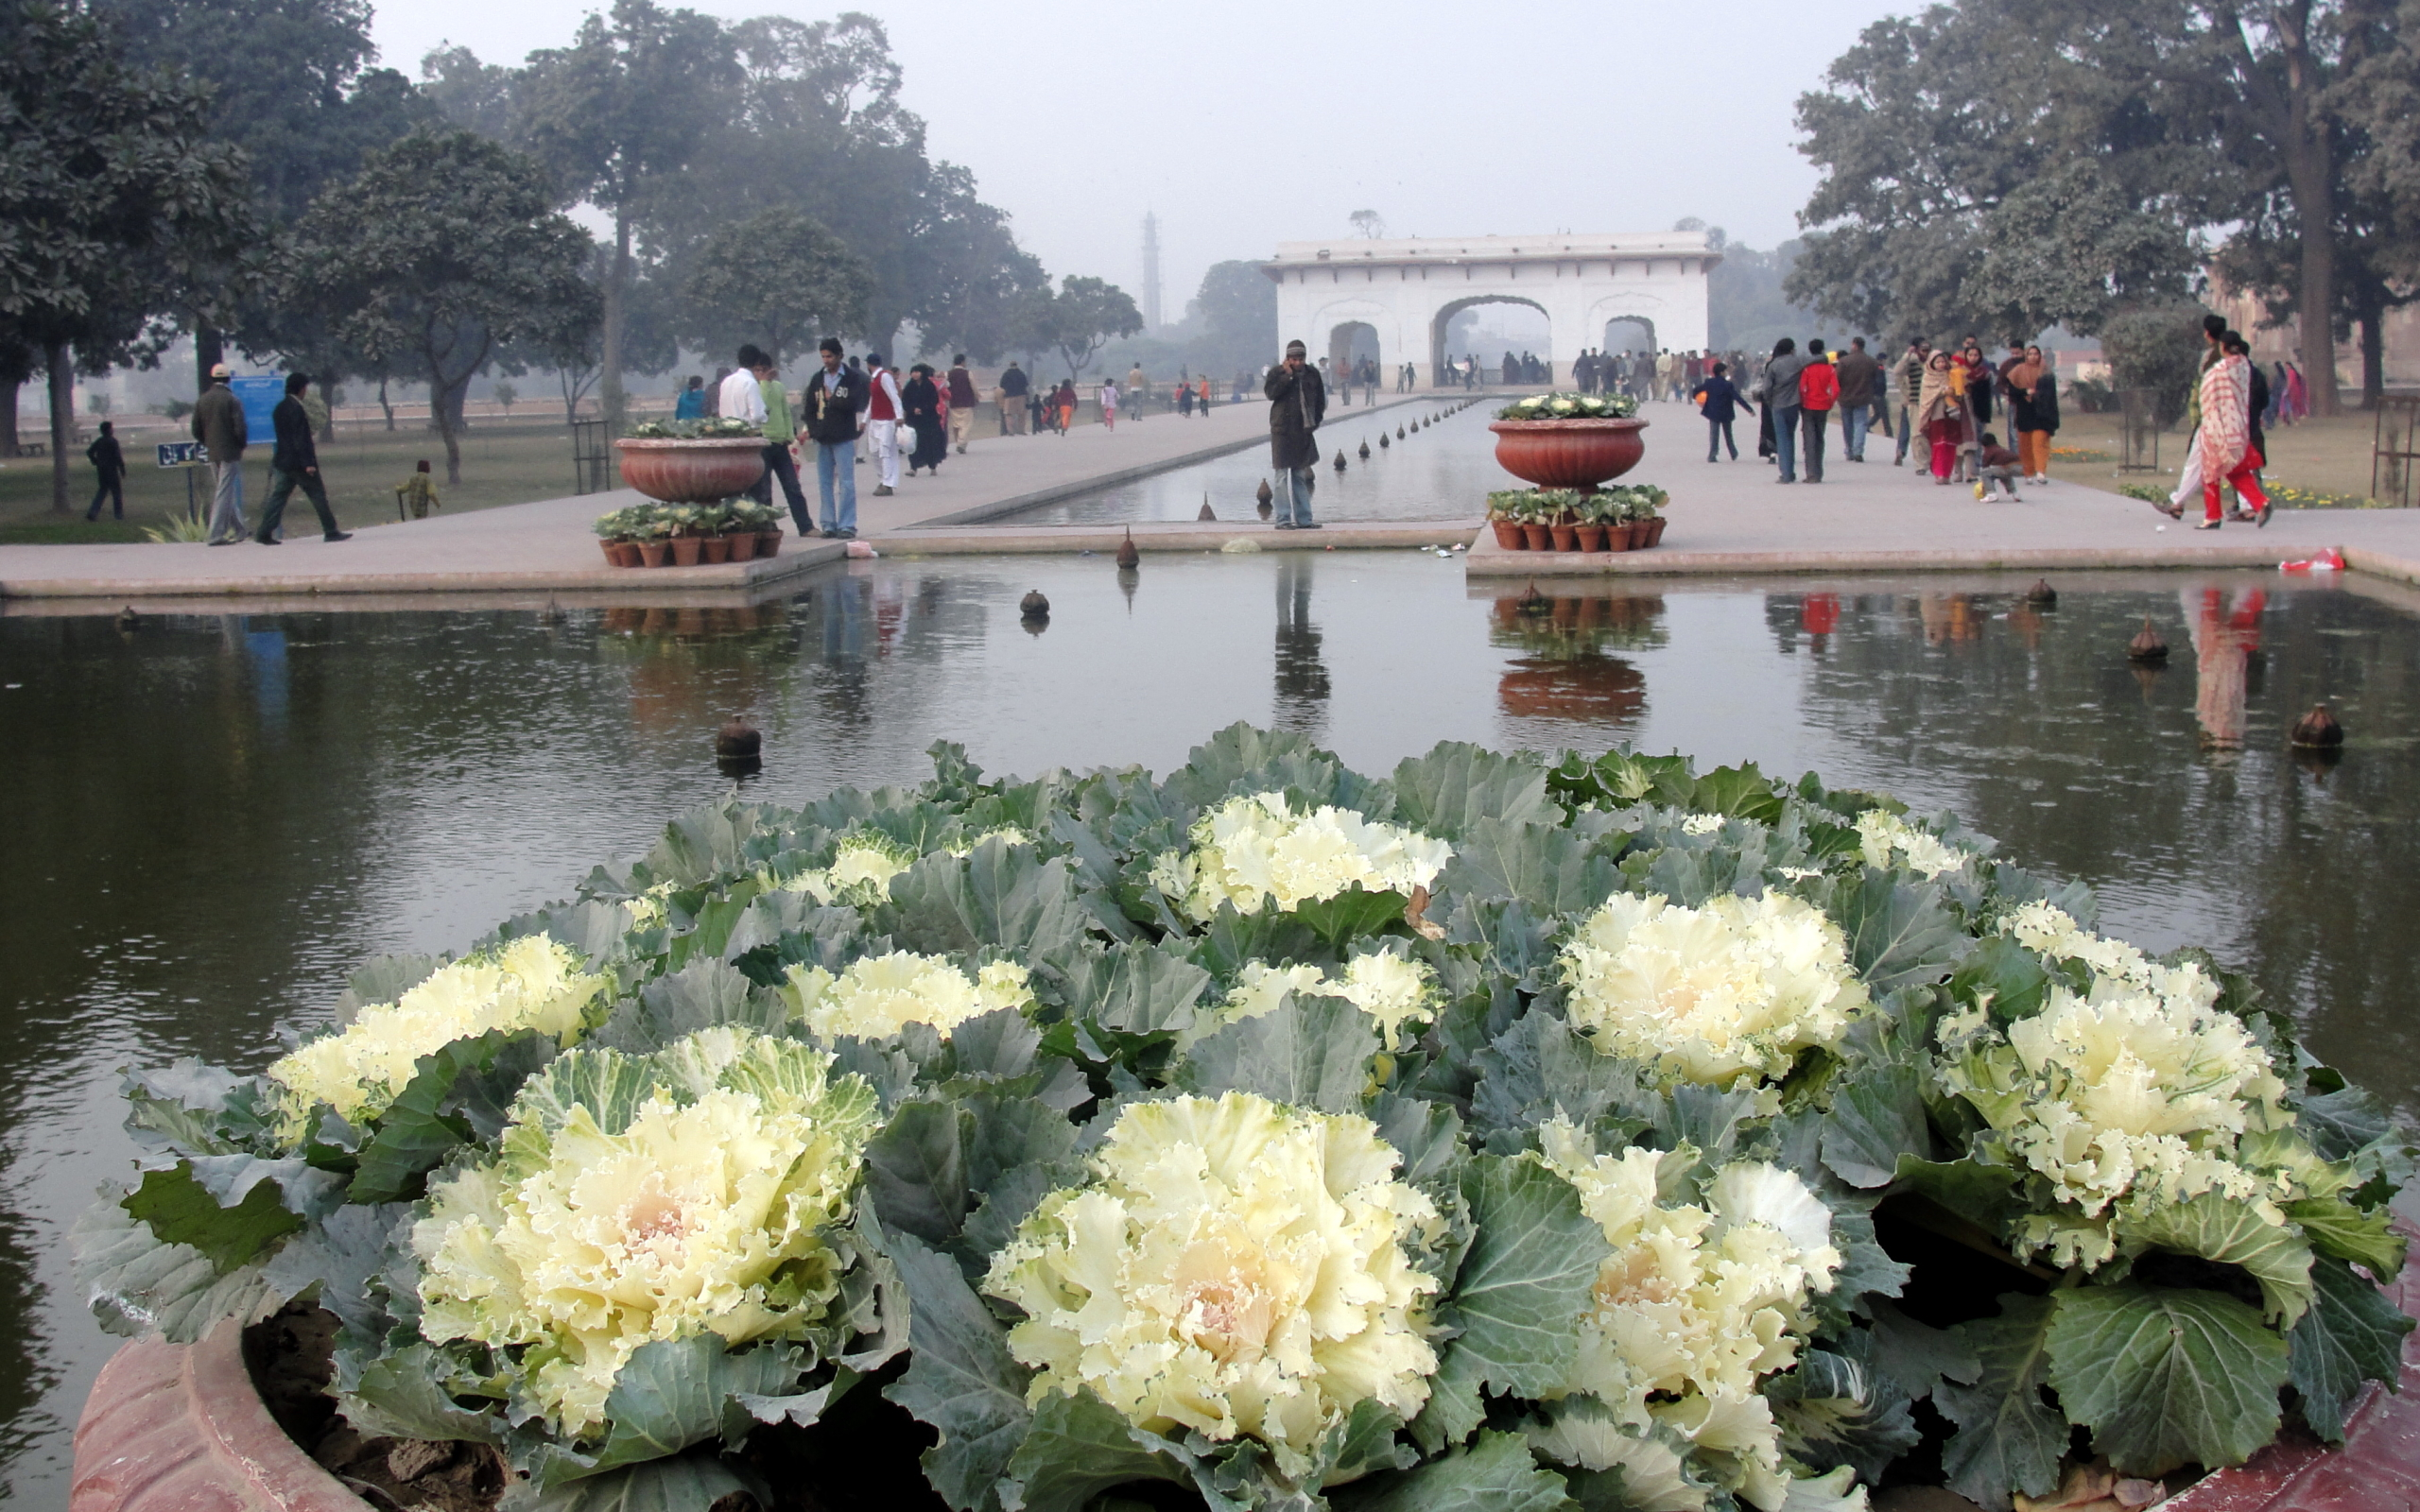 1366x768 Wallpapers Hd Cars Shalimar Gardens Wallpapers Shalimar Gardens Stock Photos